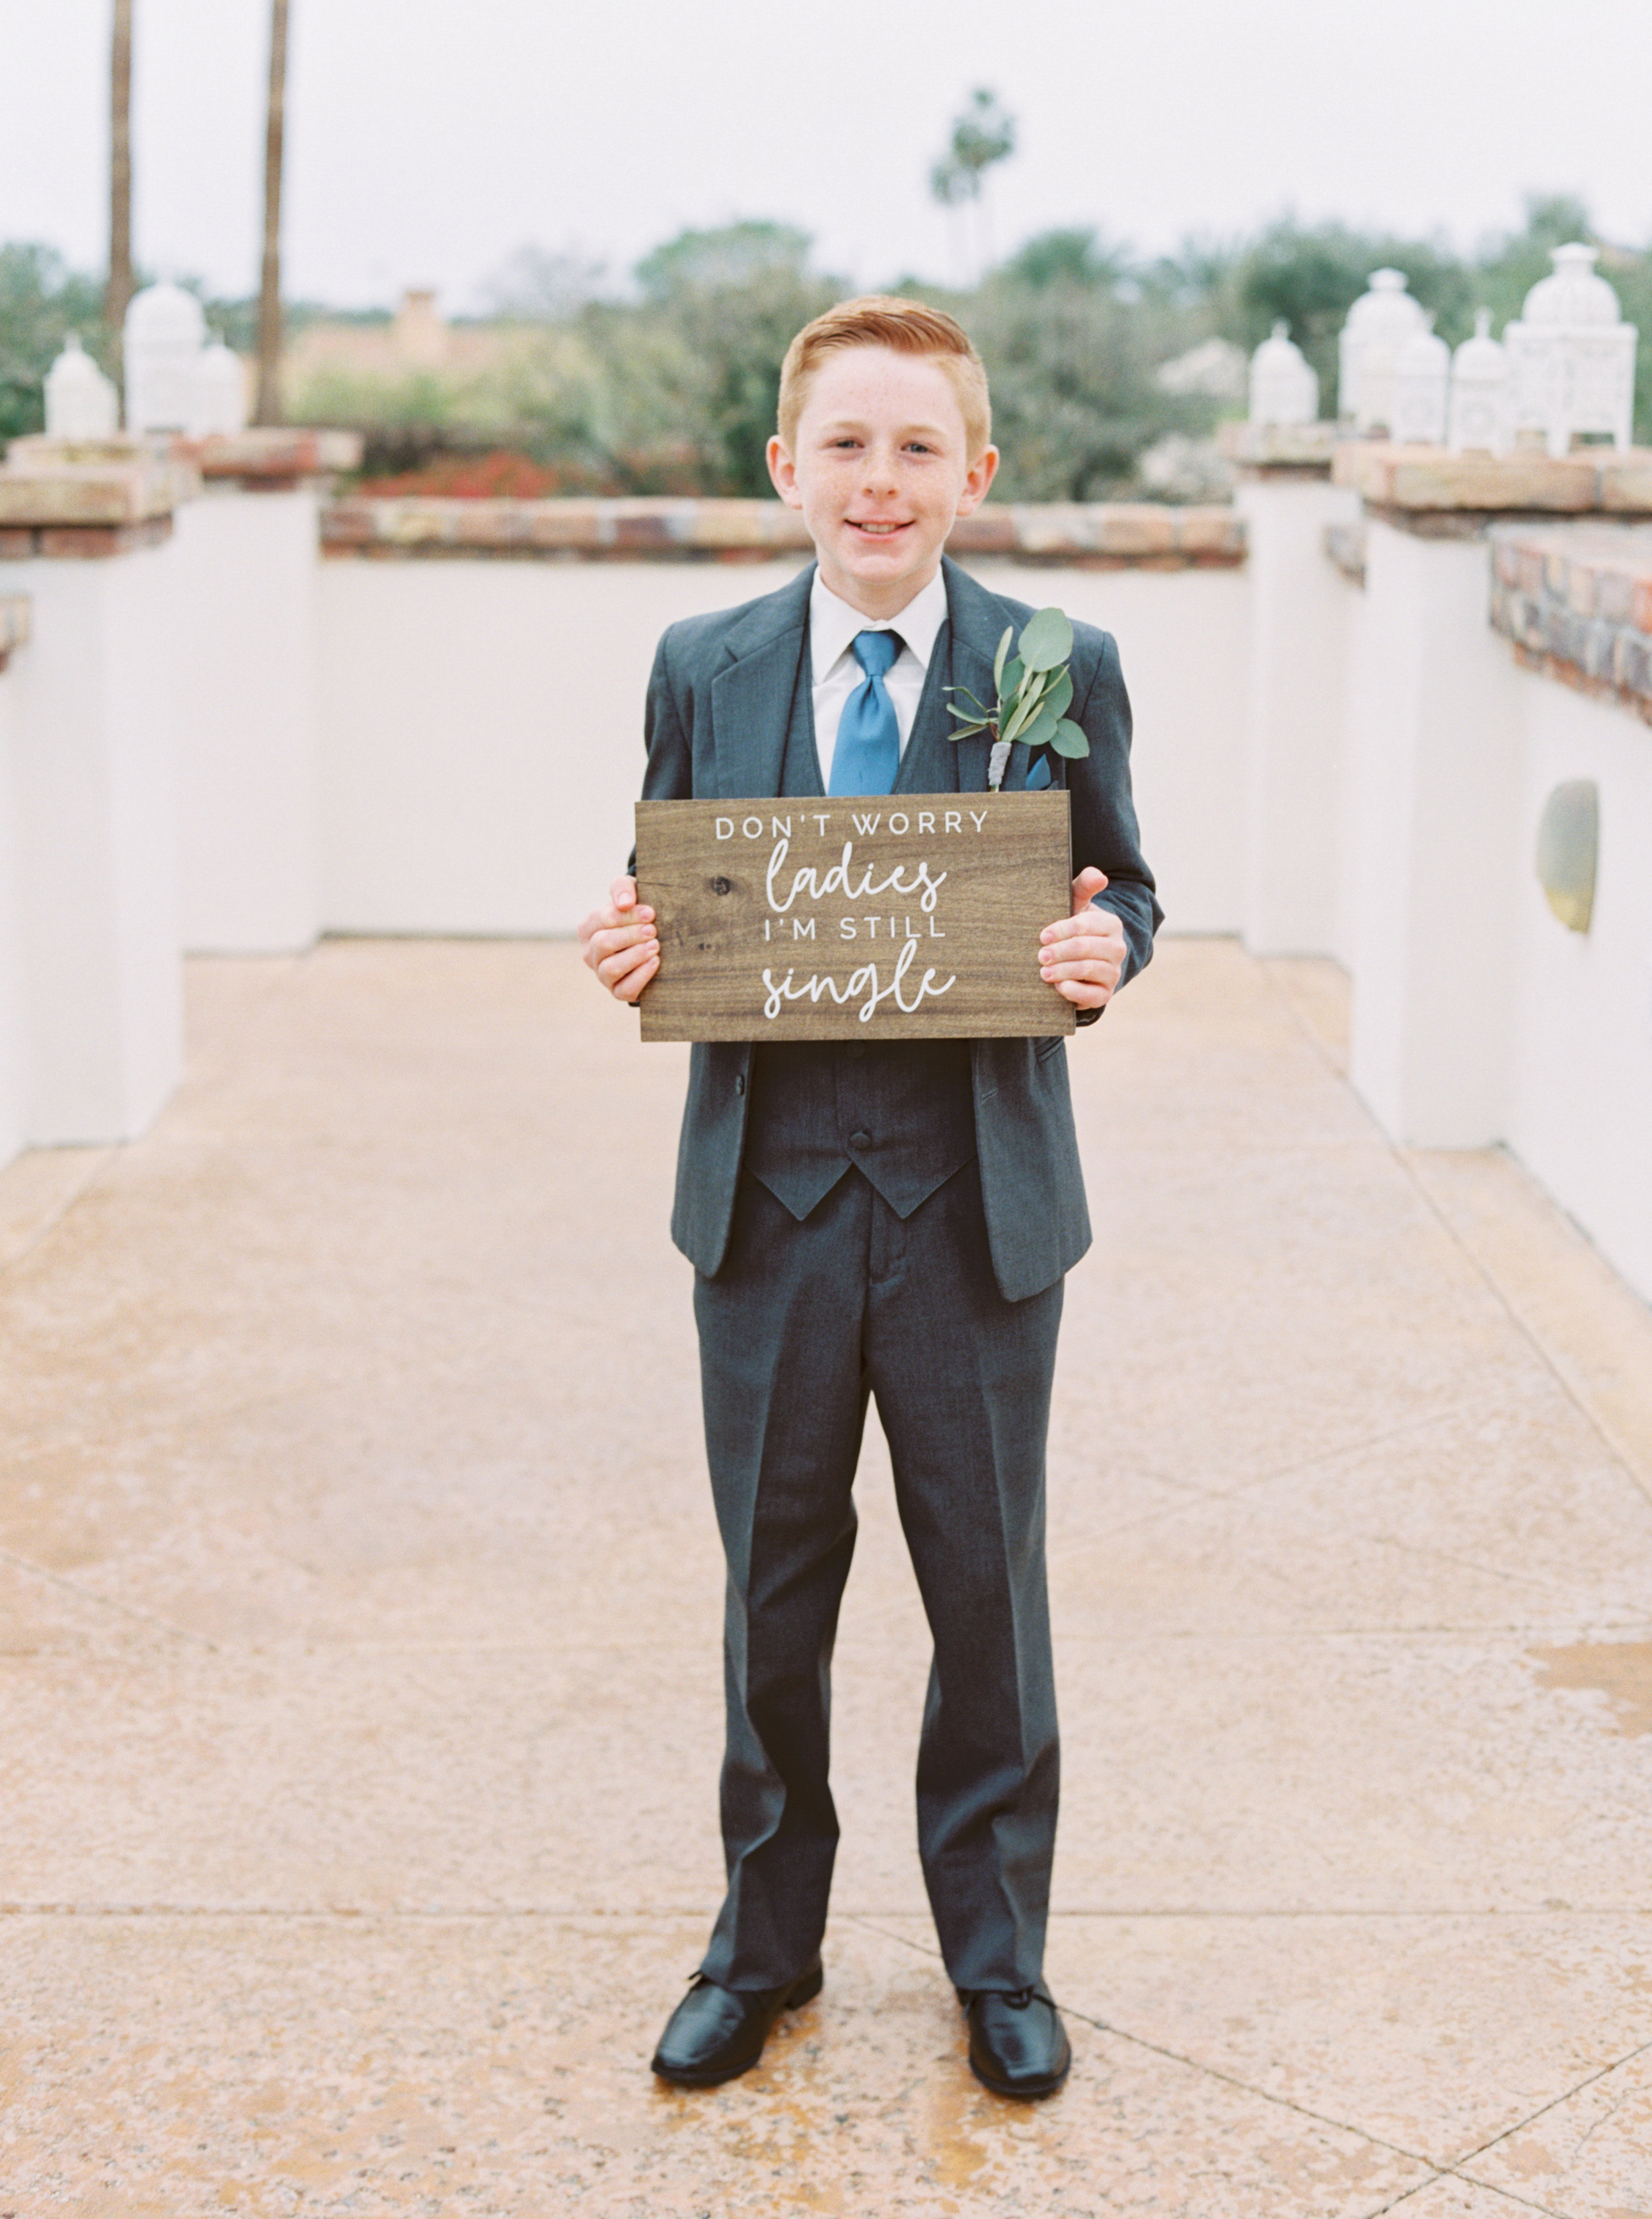 23 dont worry ladies im still single ring bearer sign ring bearer custom grey suit wedding party Life Design Events photos by Melissa Jill Photography.jpg